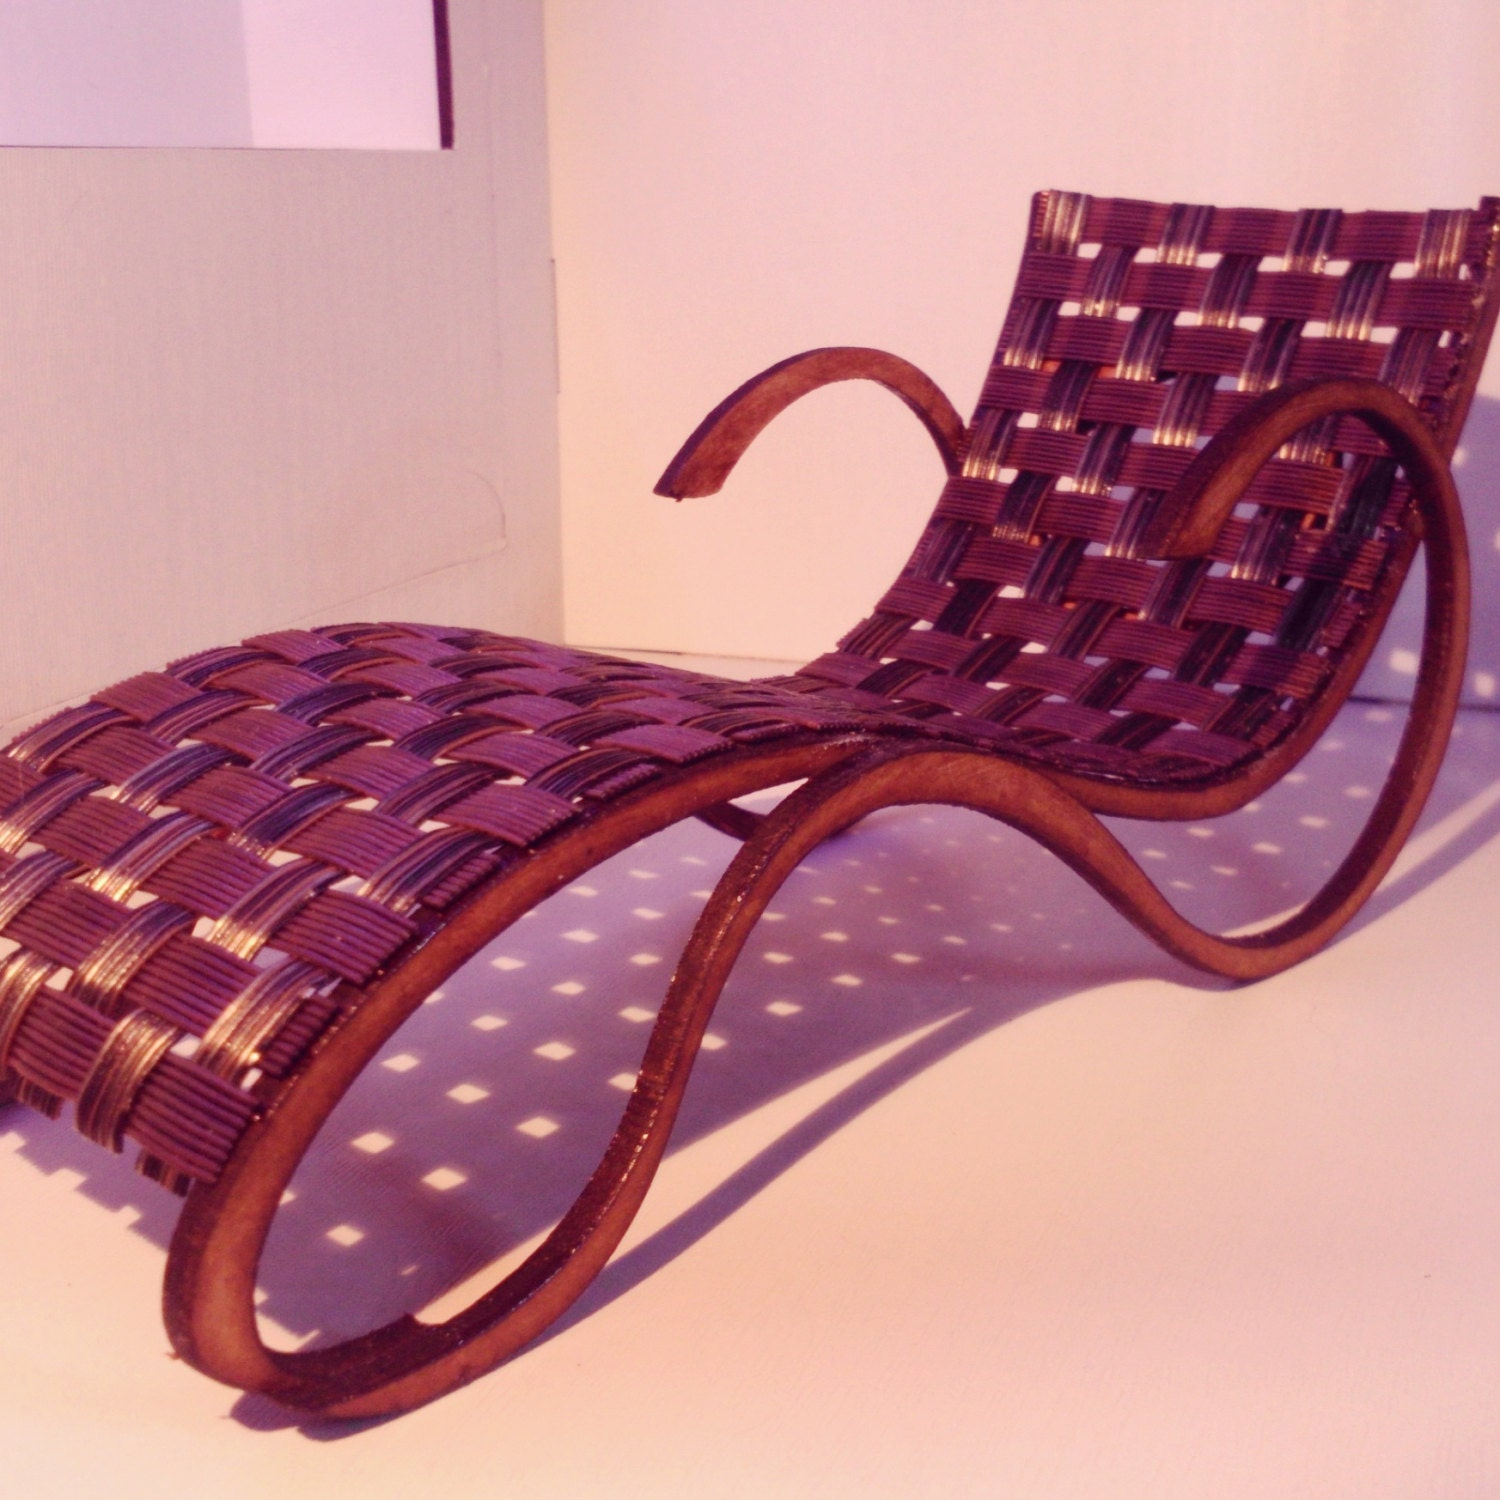 Art nouveau style brown and black chaise longue 1 12 for Art nouveau chaise longue